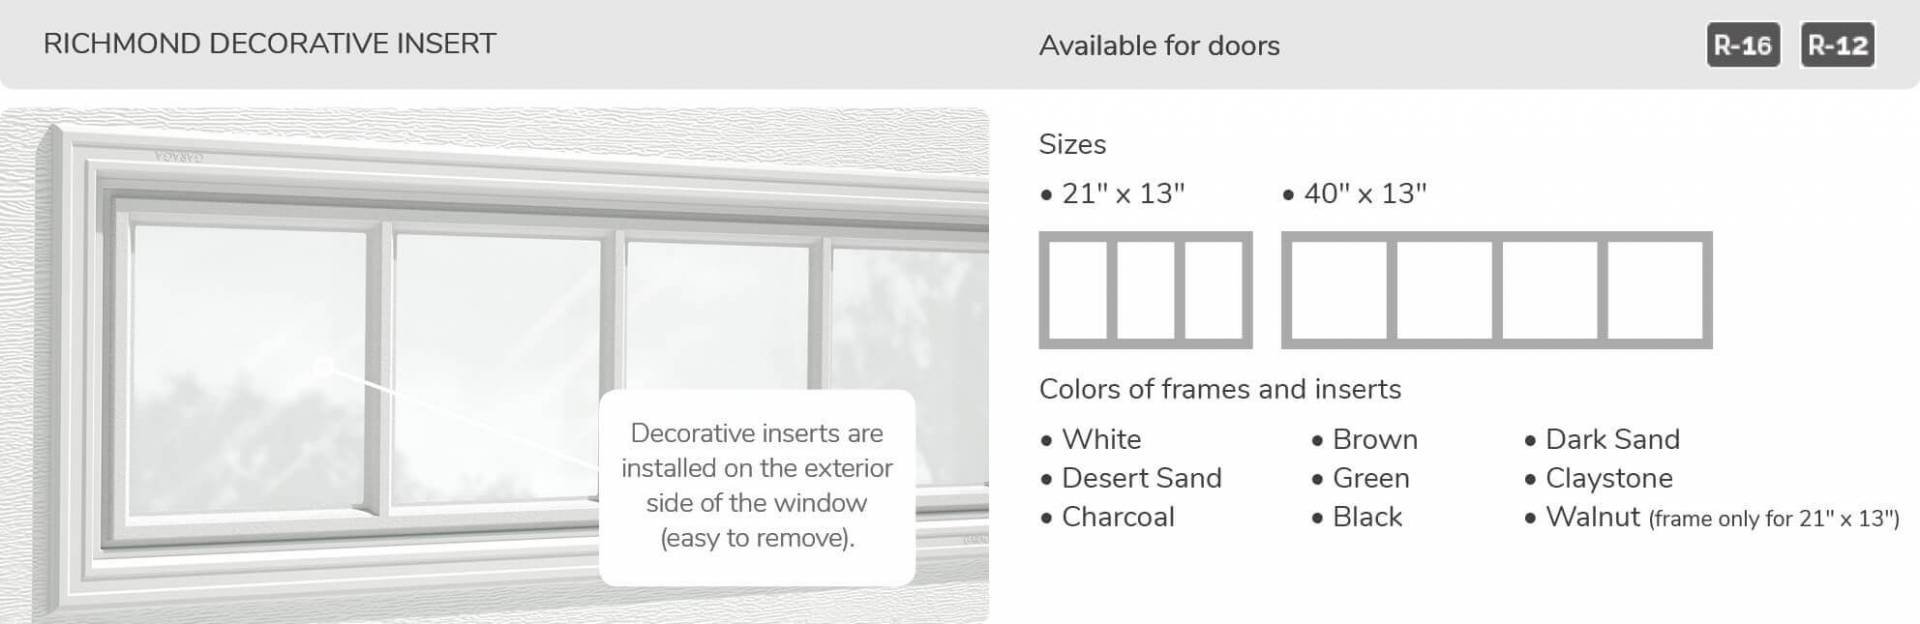 Richmond Decorative Insert, 21' x 13' and 40' x 13', available for doors R-16 and R-12